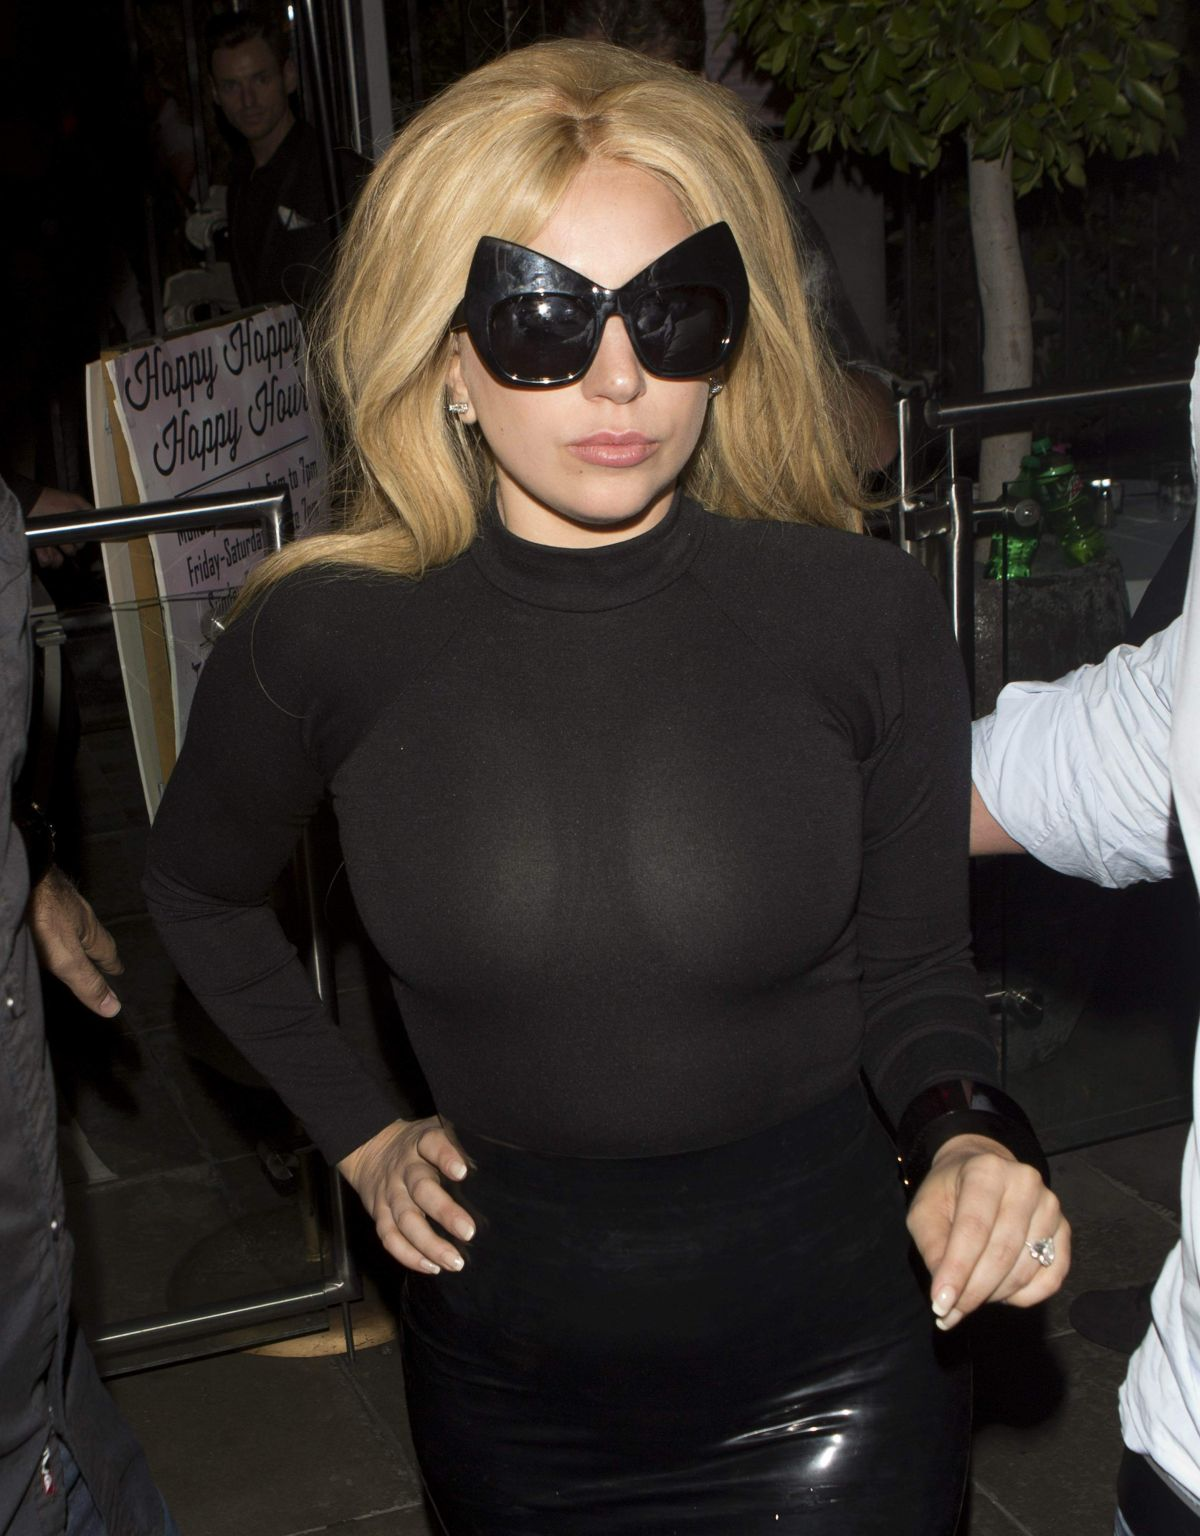 Gaga upskirt no pants